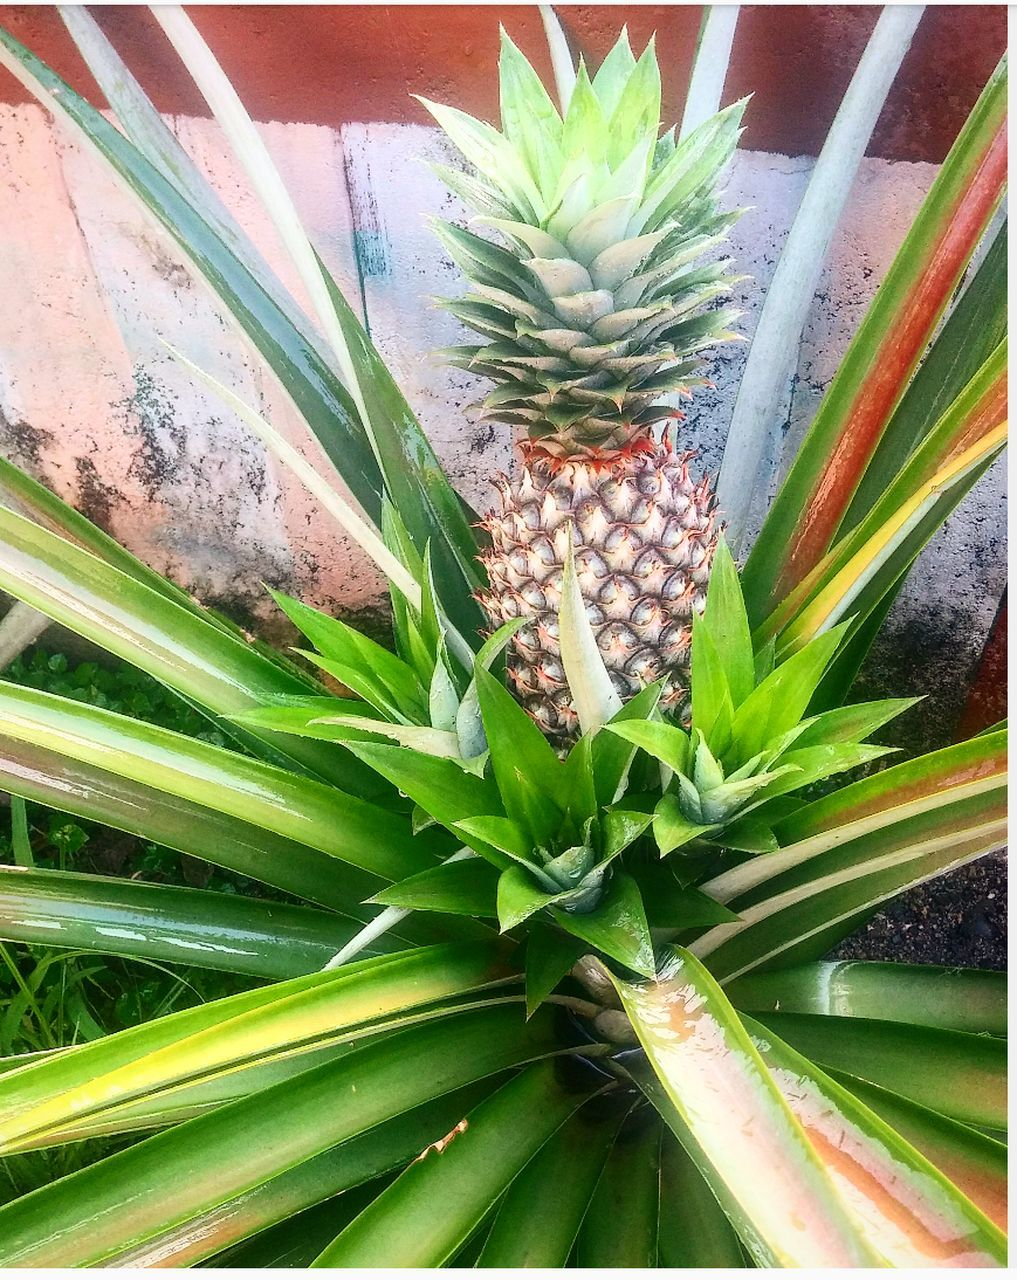 leaf, green color, growth, pineapple, no people, nature, freshness, flower, food, plant, beauty in nature, day, outdoors, healthy eating, close-up